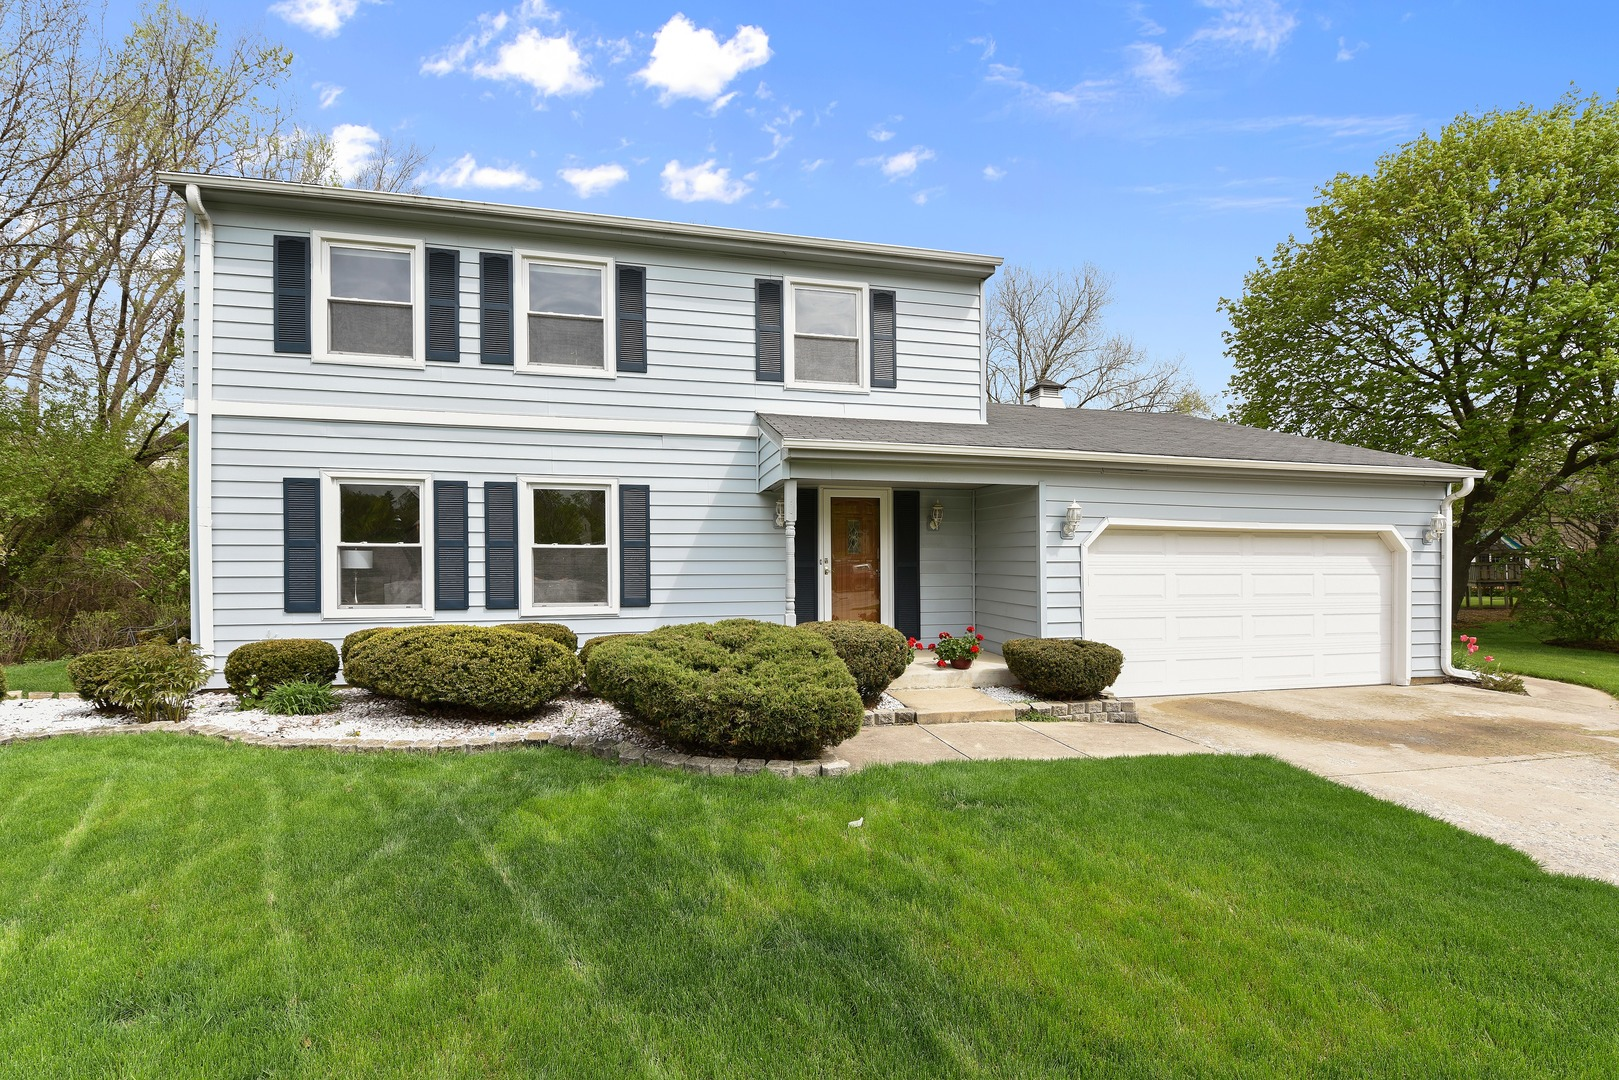 Photo for 1608 Plum Court, DOWNERS GROVE, IL 60515 (MLS # 10408139)